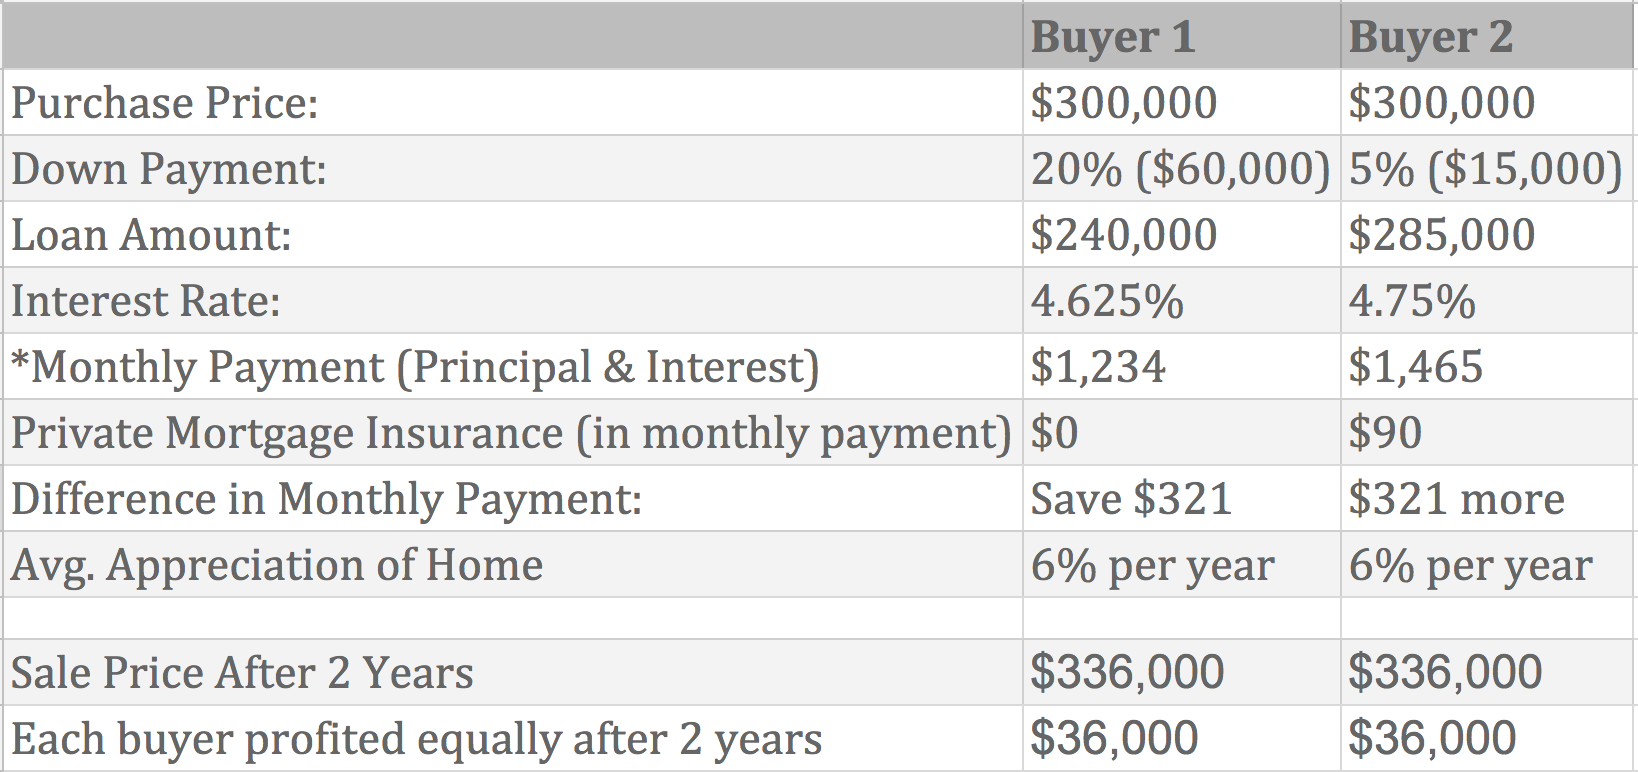 *Your monthly payment will also include taxes & insurance: $1,975 $2,300